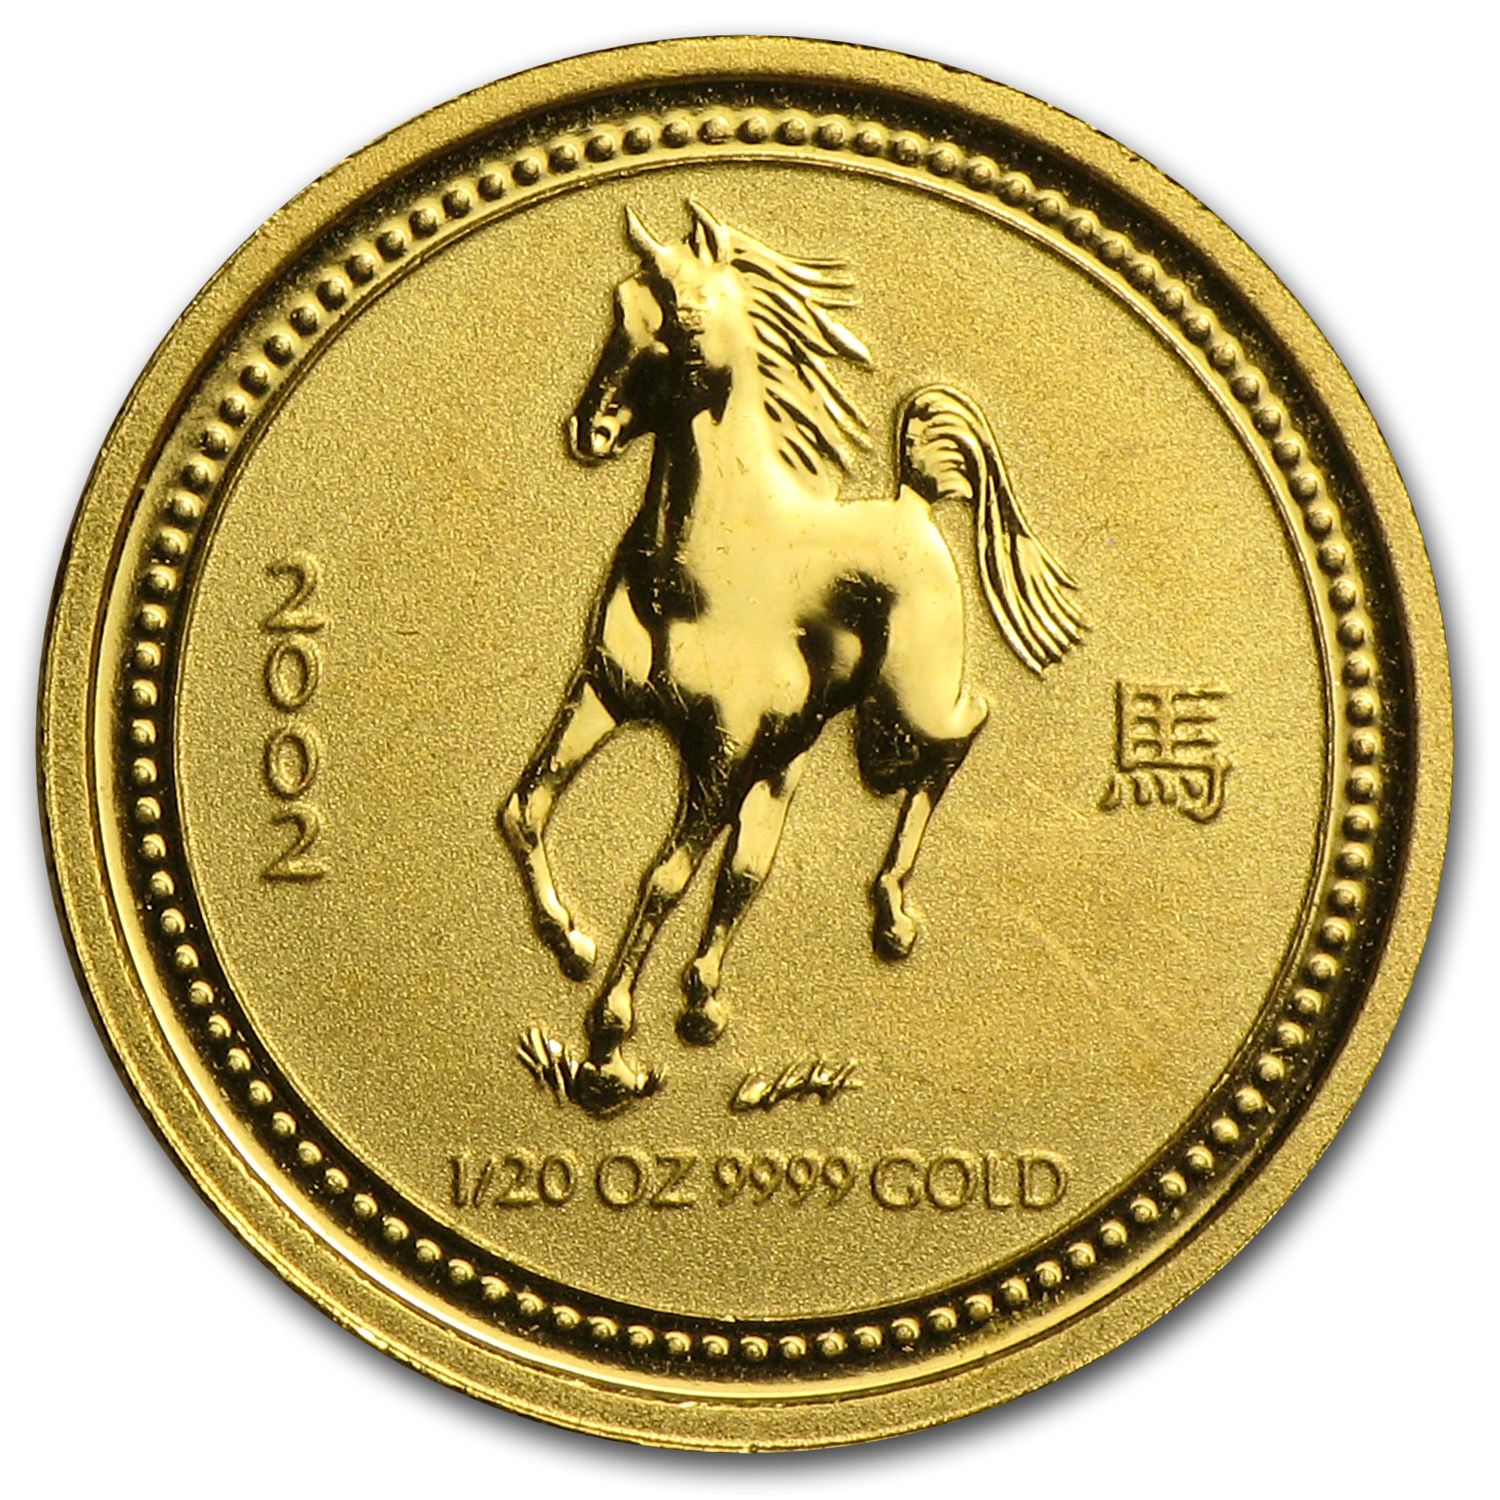 2002 1/20 oz Gold Year of the Horse Coin (SI) (Light Abrasions)